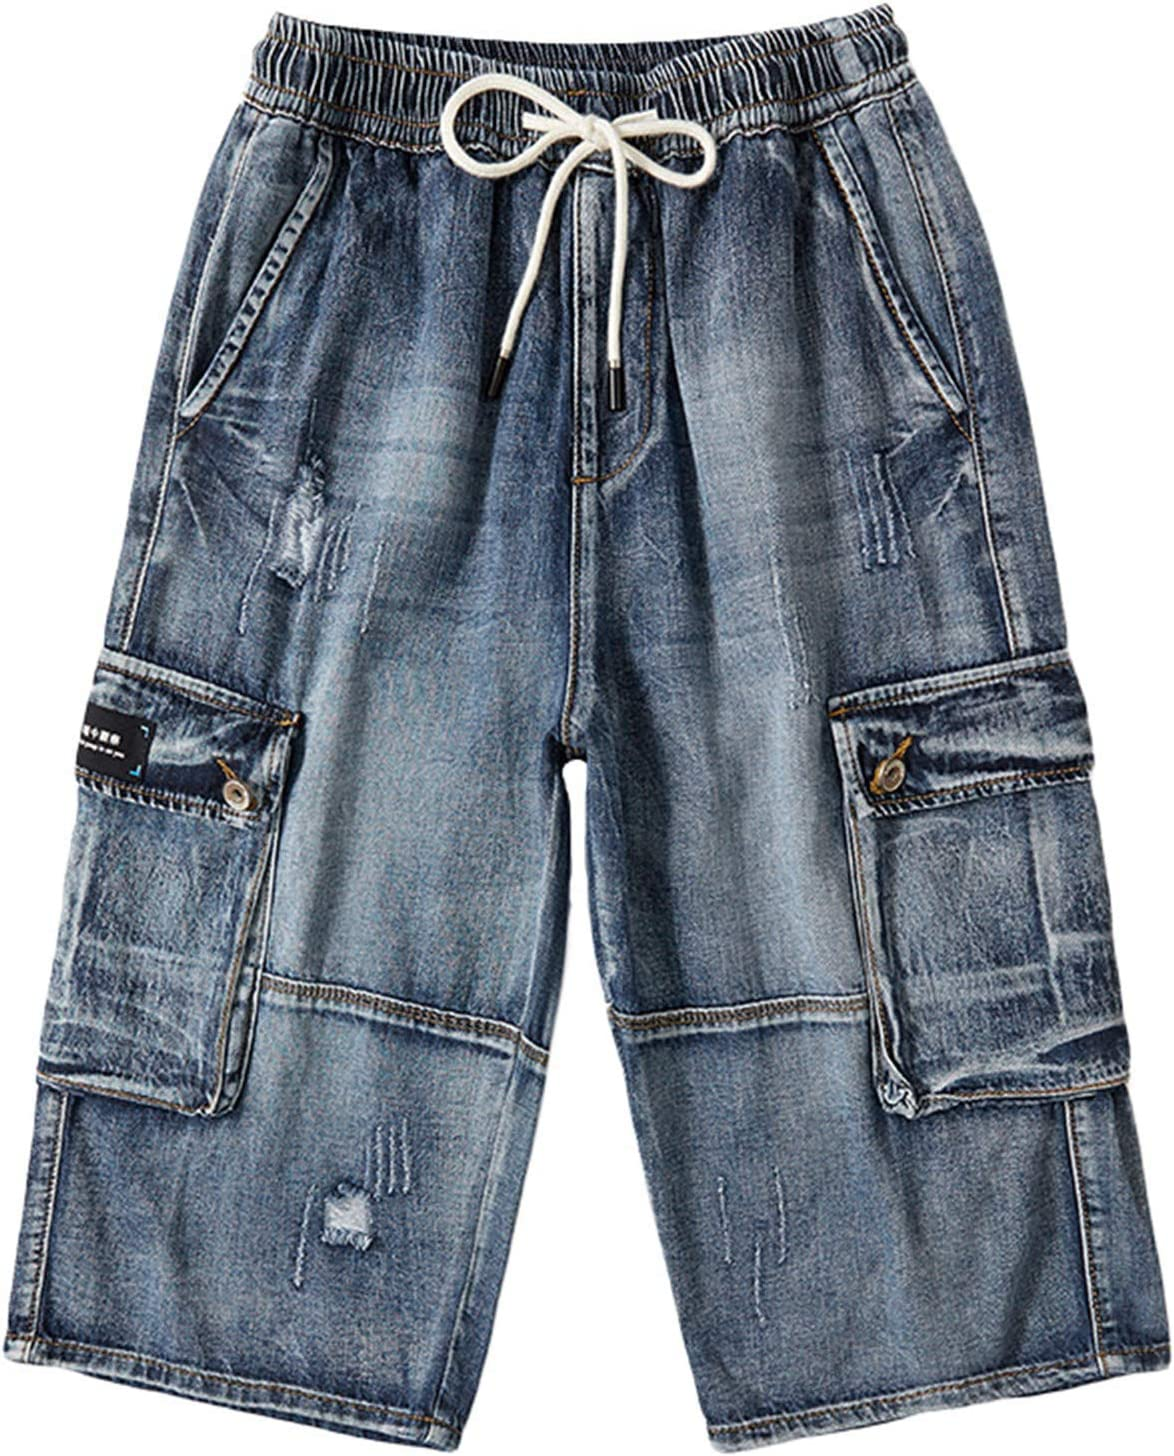 Yiqinyuan Summer Men Jeans Cargo Shorts Fashion Casual Elasticated Waist Stretch Big Pocket Cropped Jean Male